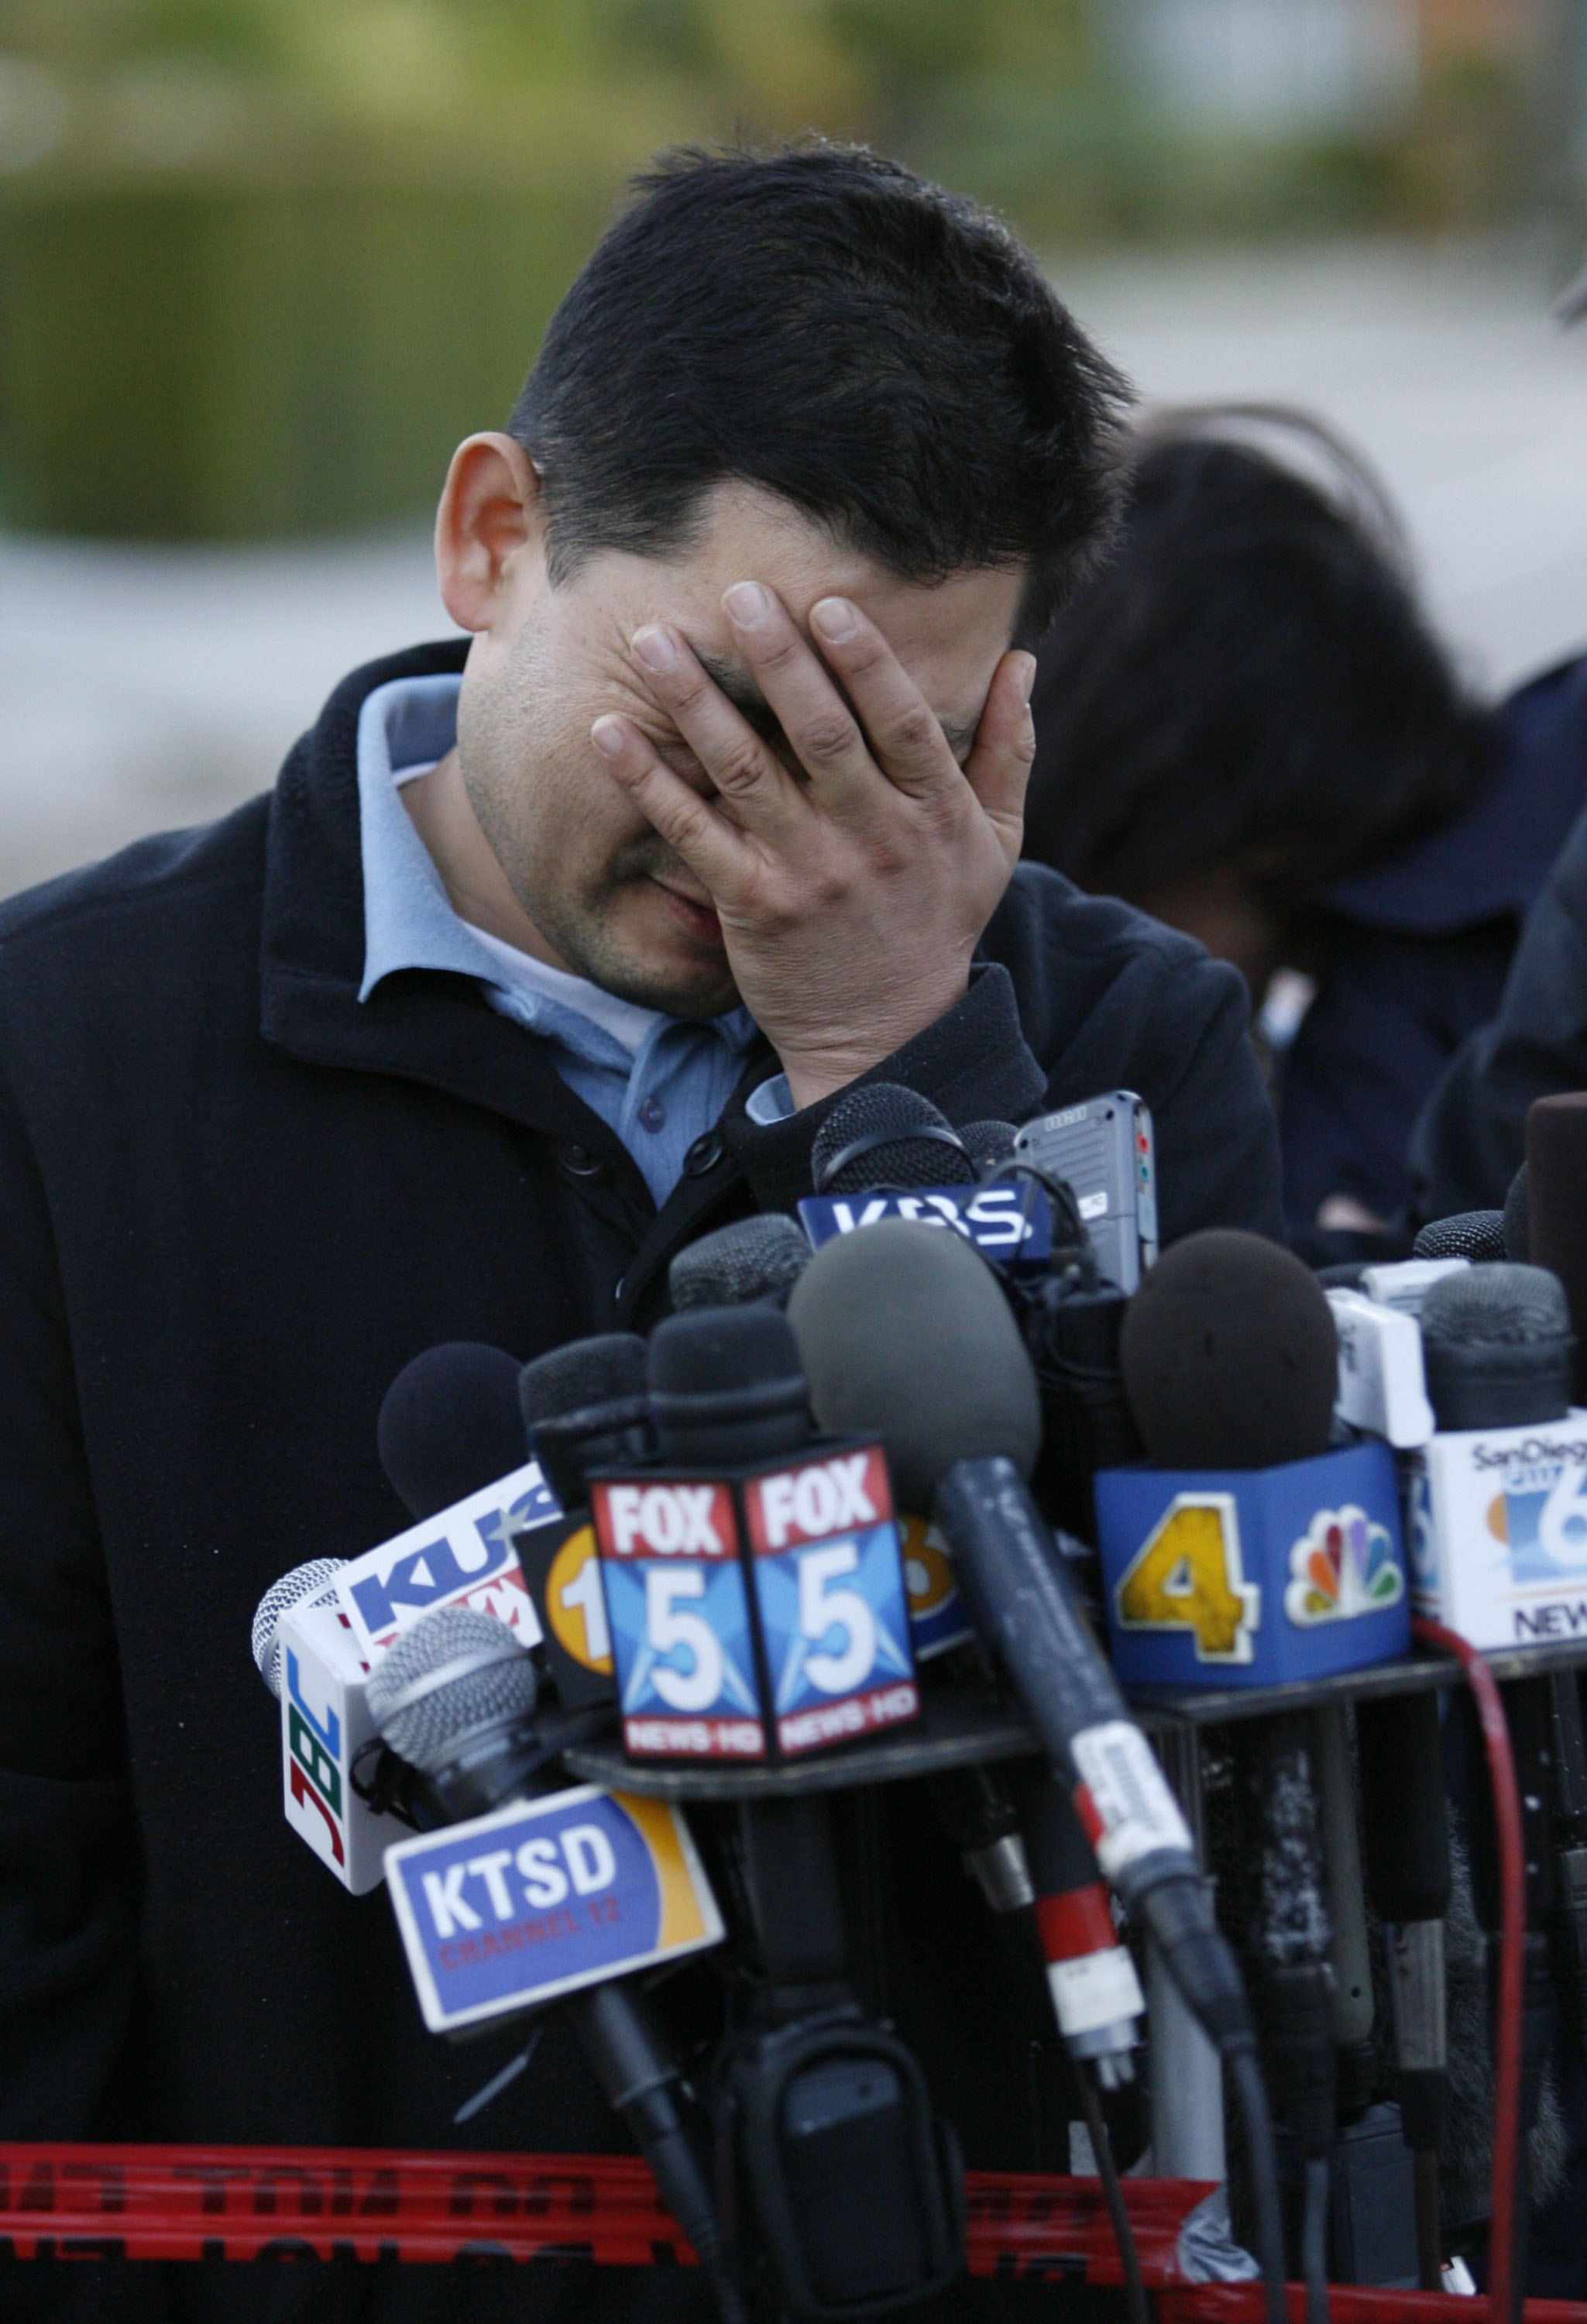 Dong Yun Yoon speaks after losing four family members when a military plane crashed into his house on Tuesday.